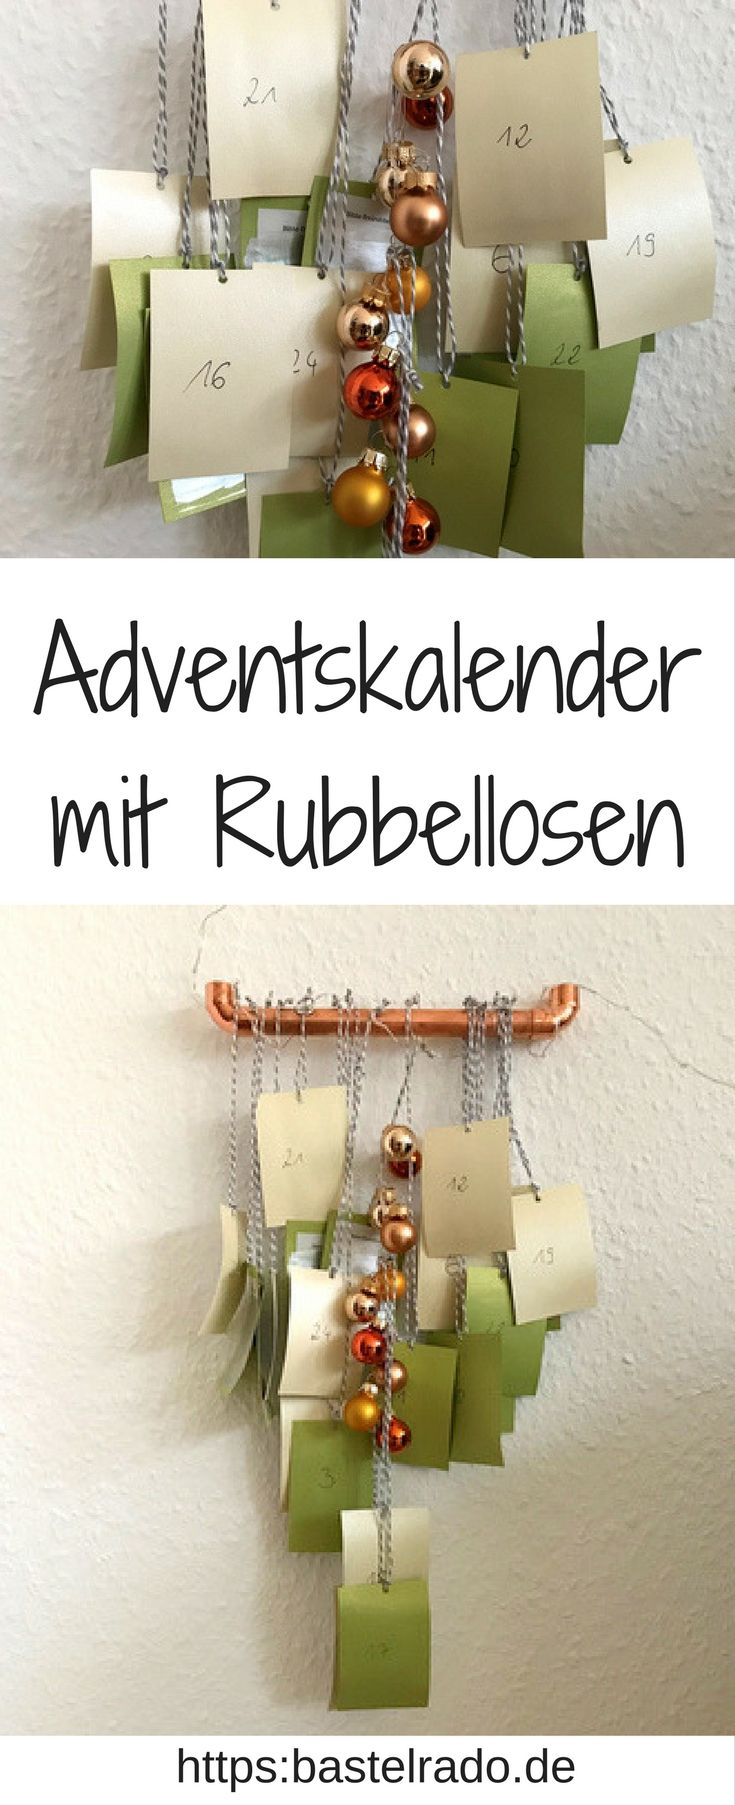 Adventskalender Mit Rubbellosen